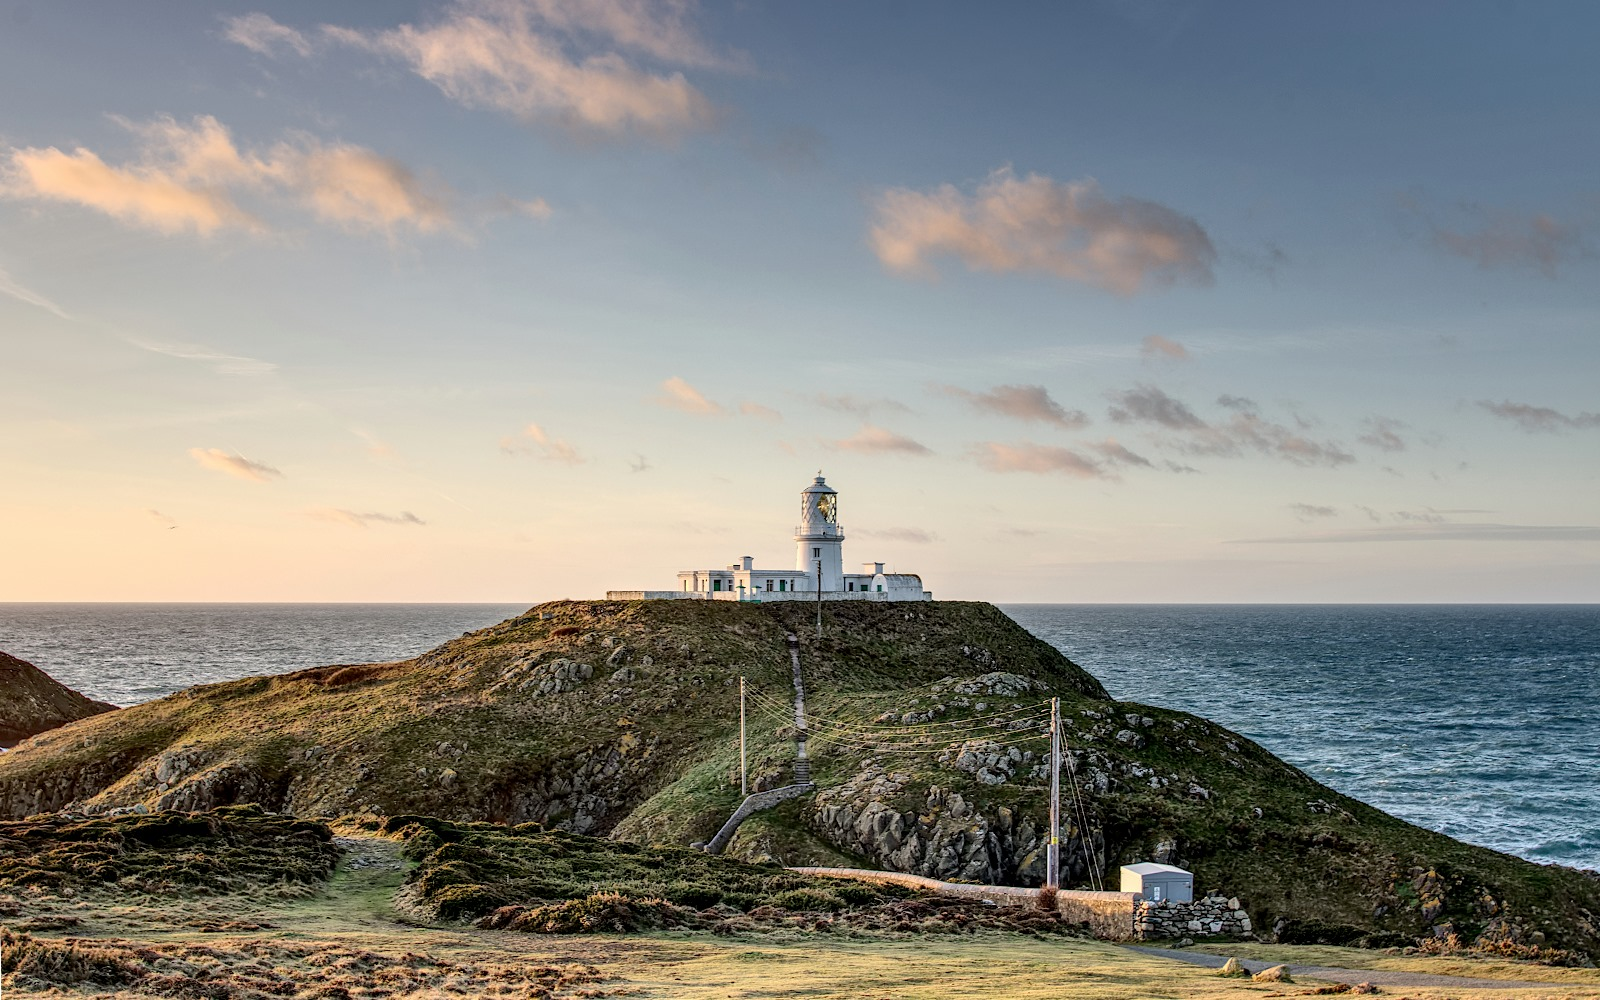 uploads/anh-dienden-dulich/wales/strumble-lighthouse-pembrokeshire.jpg